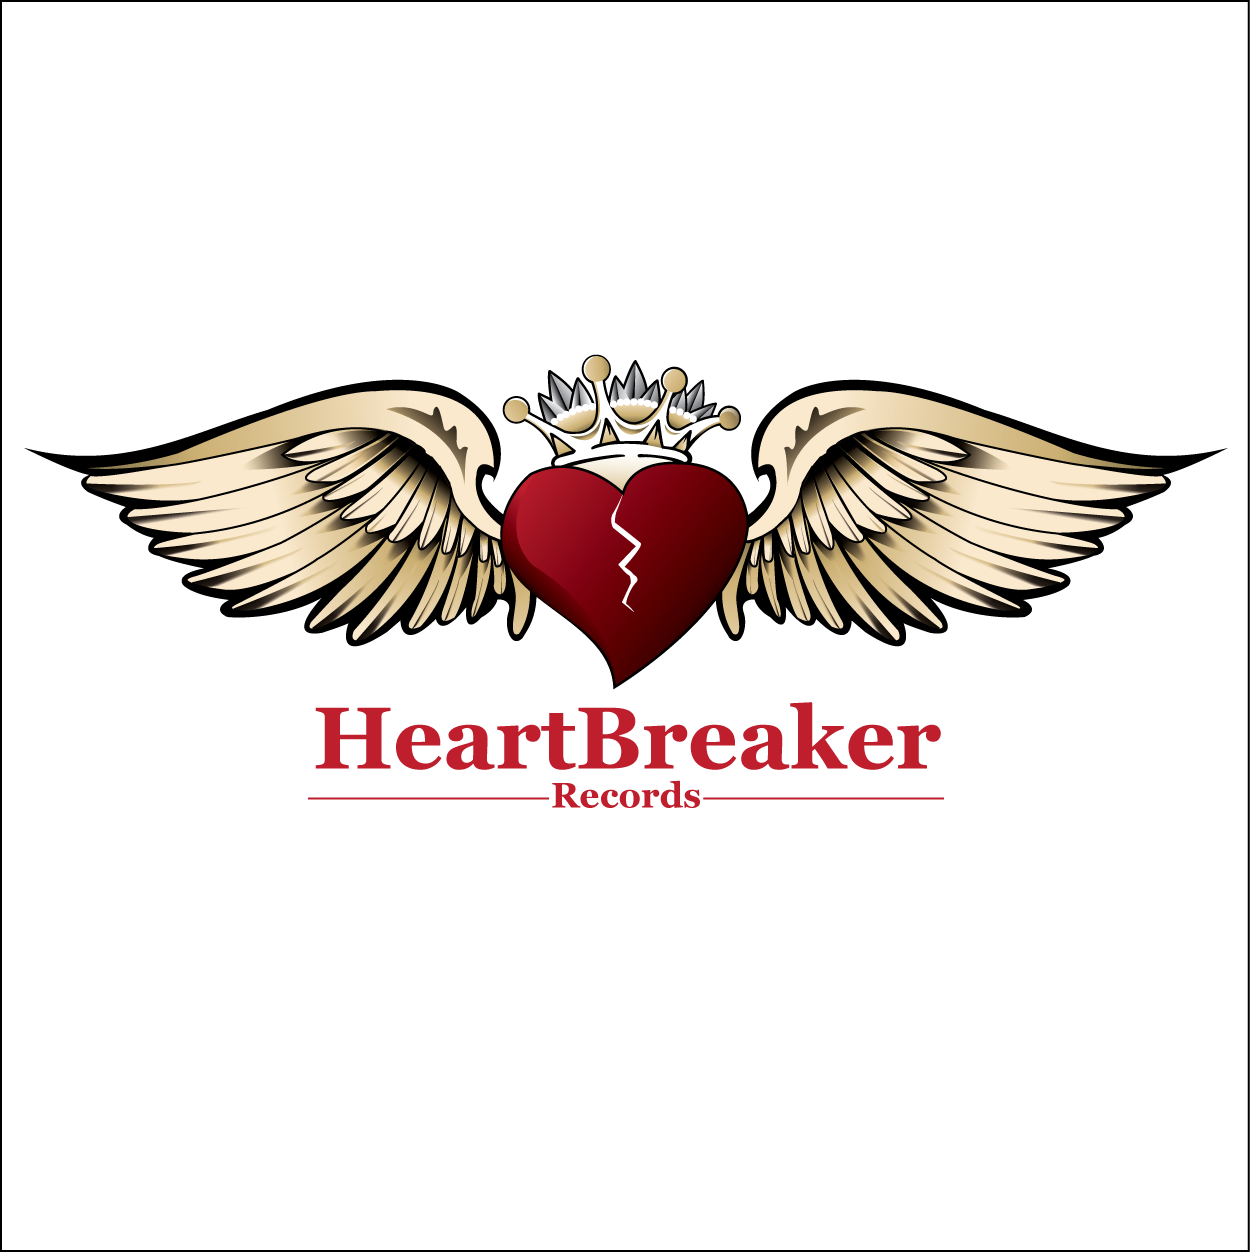 Logo Design by trabas - Entry No. 60 in the Logo Design Contest Heartbreaker Records.